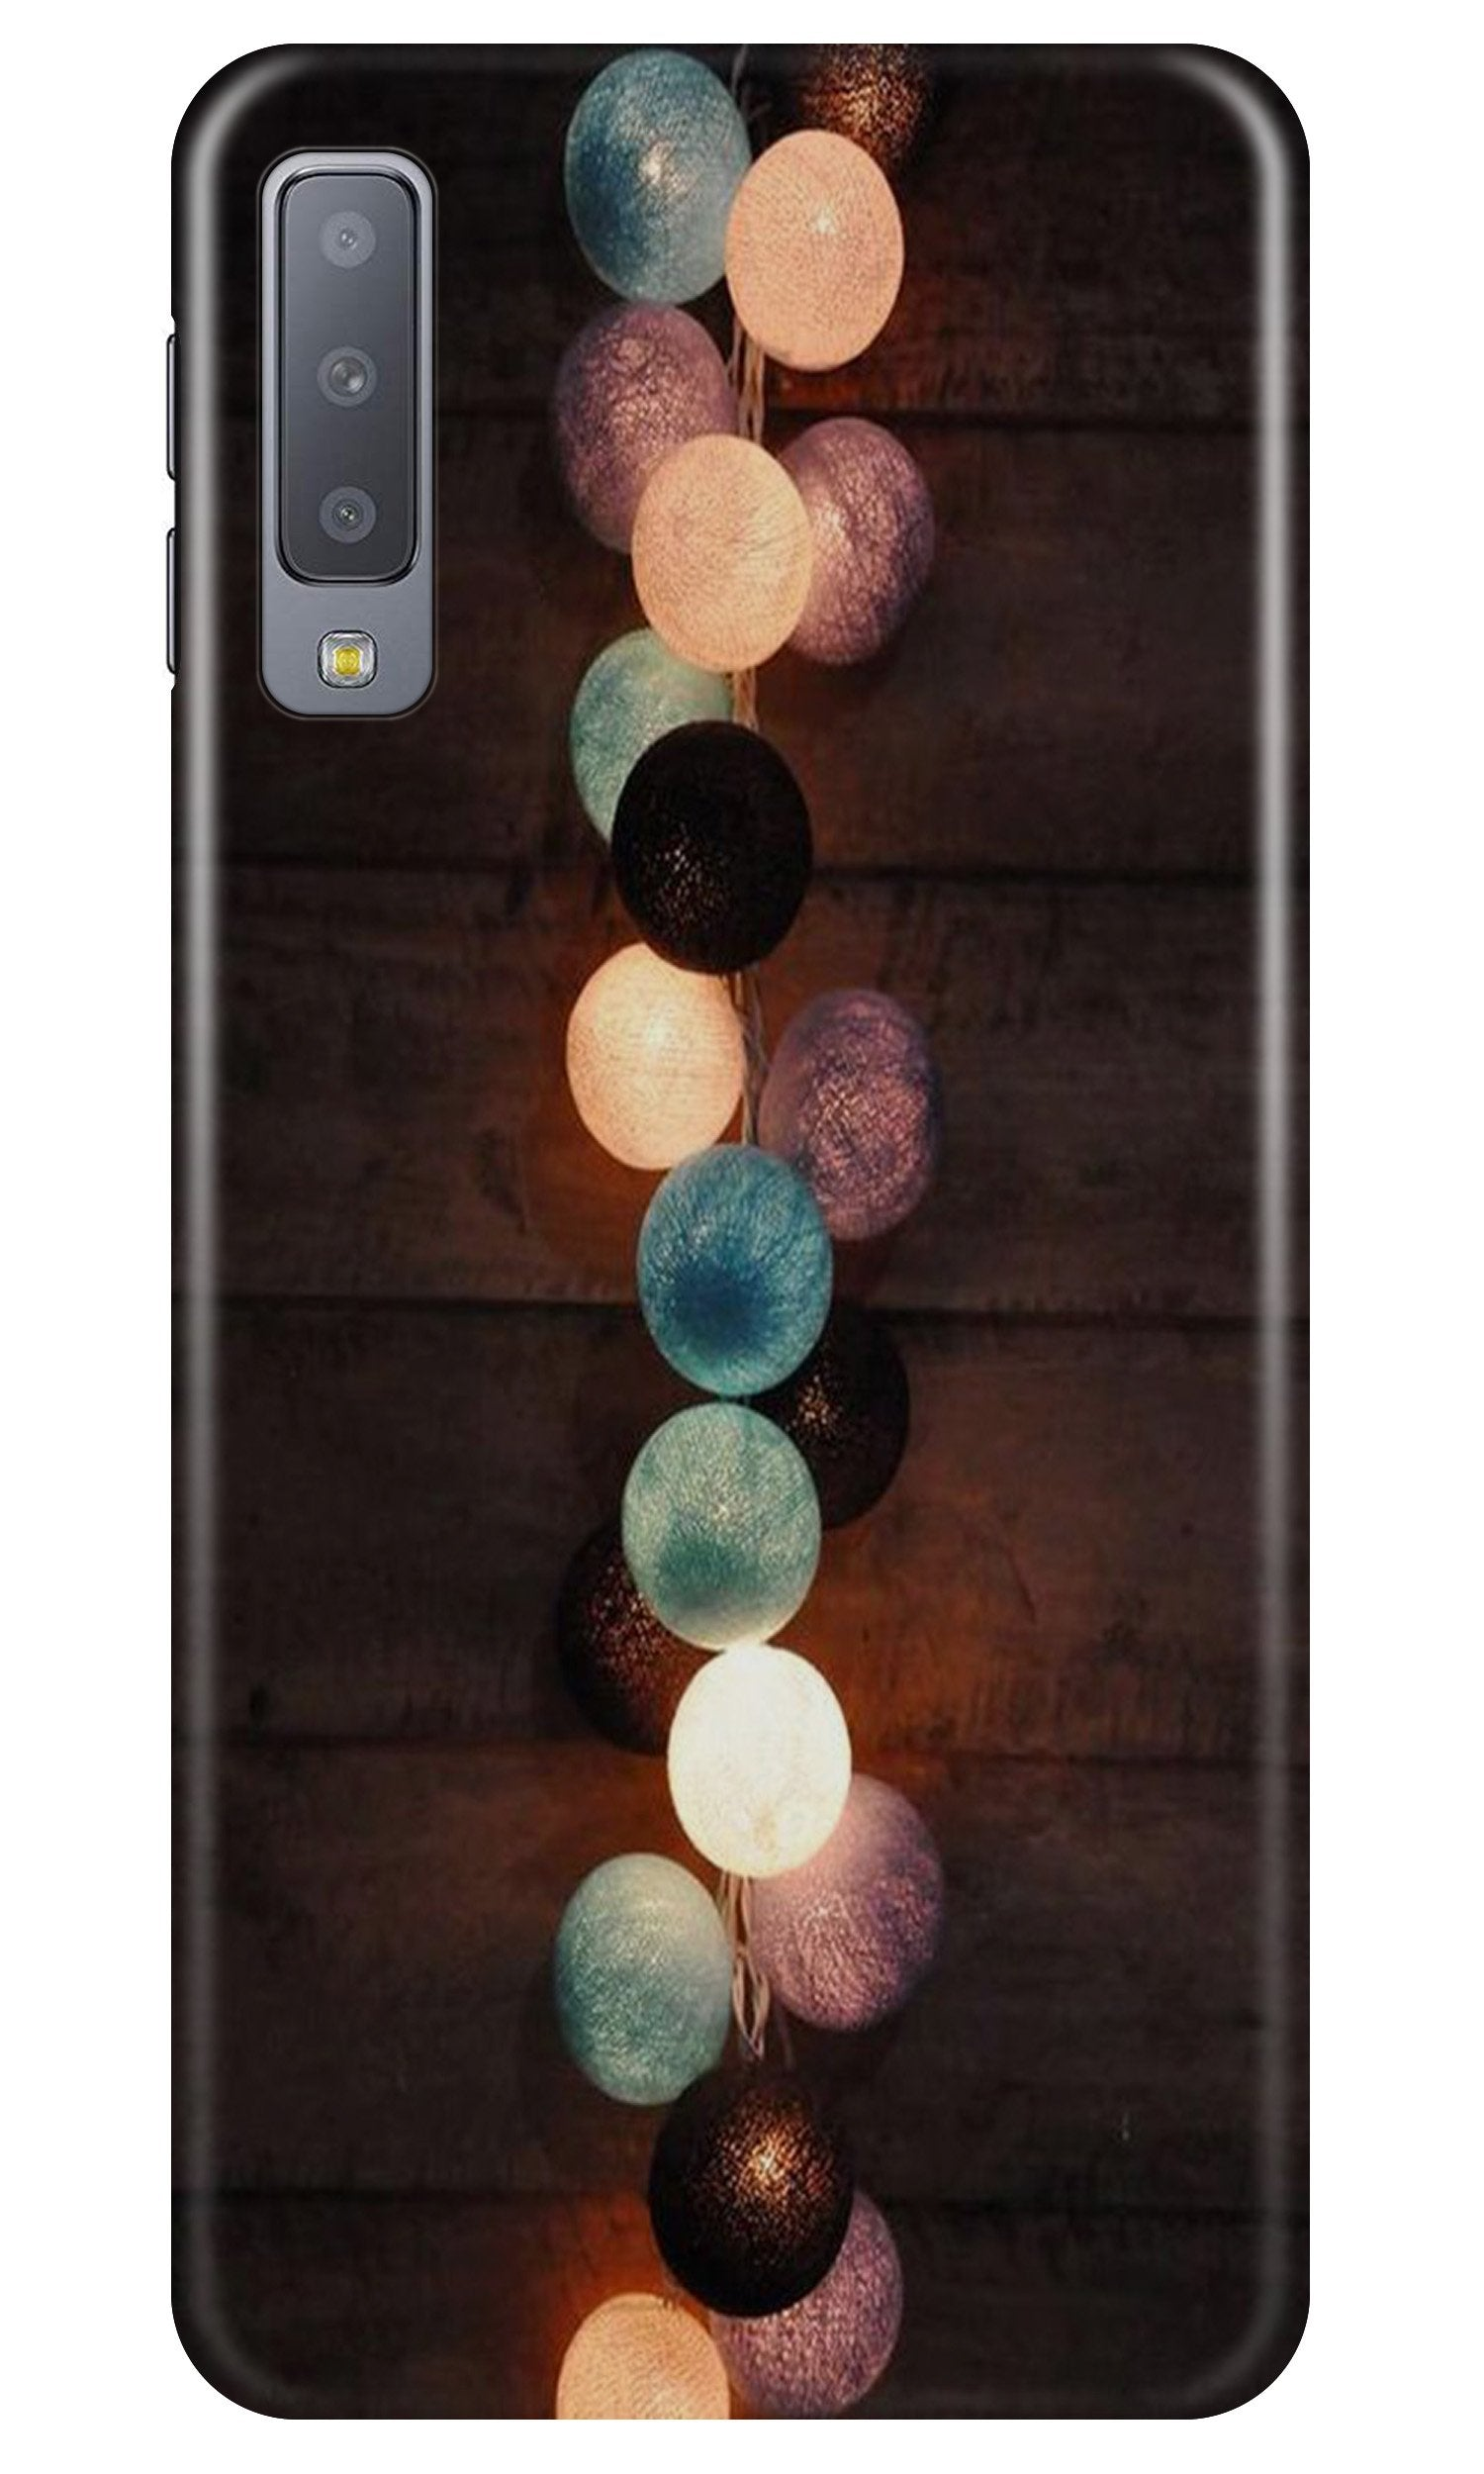 Party Lights Case for Samsung Galaxy A7 2018 (Design No. 209)